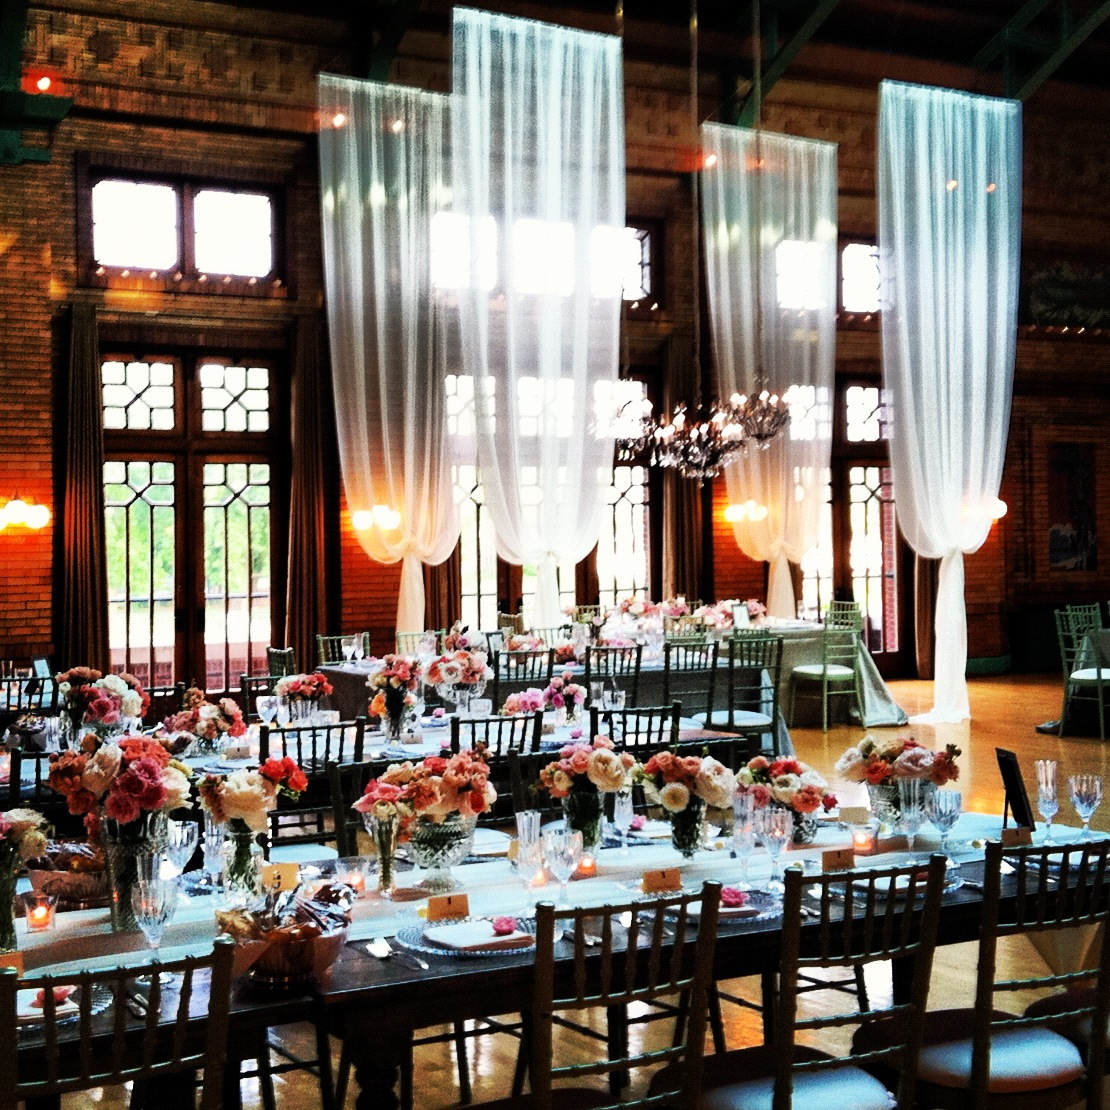 Liven It Up Events Blog, Giving Your Wedding Planning